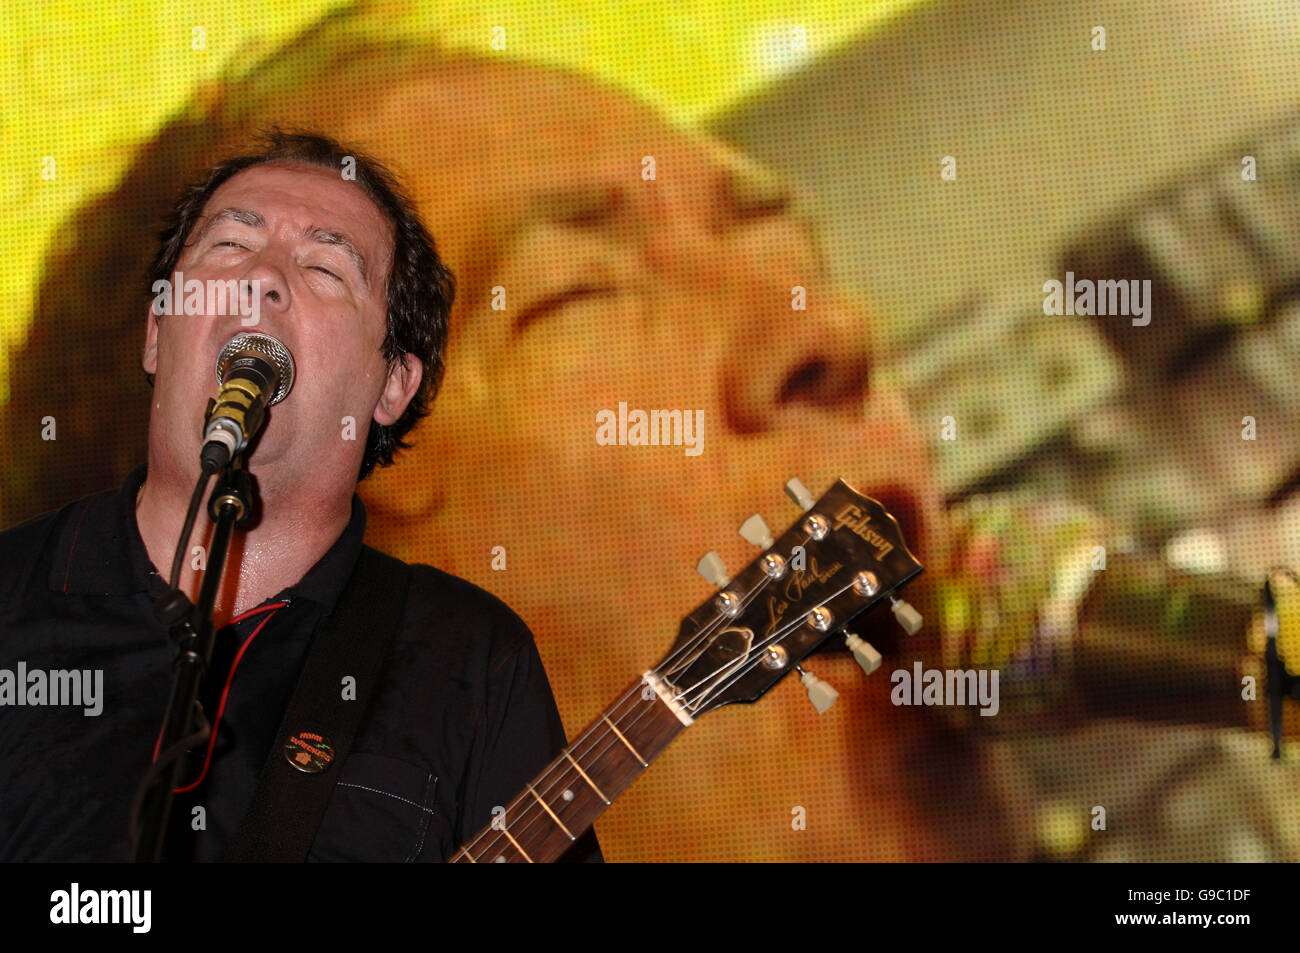 Pete Shelley of the Buzzcocks performs on stage during the MOJO Honours List launch - which comprises 10 awards, - Stock Image